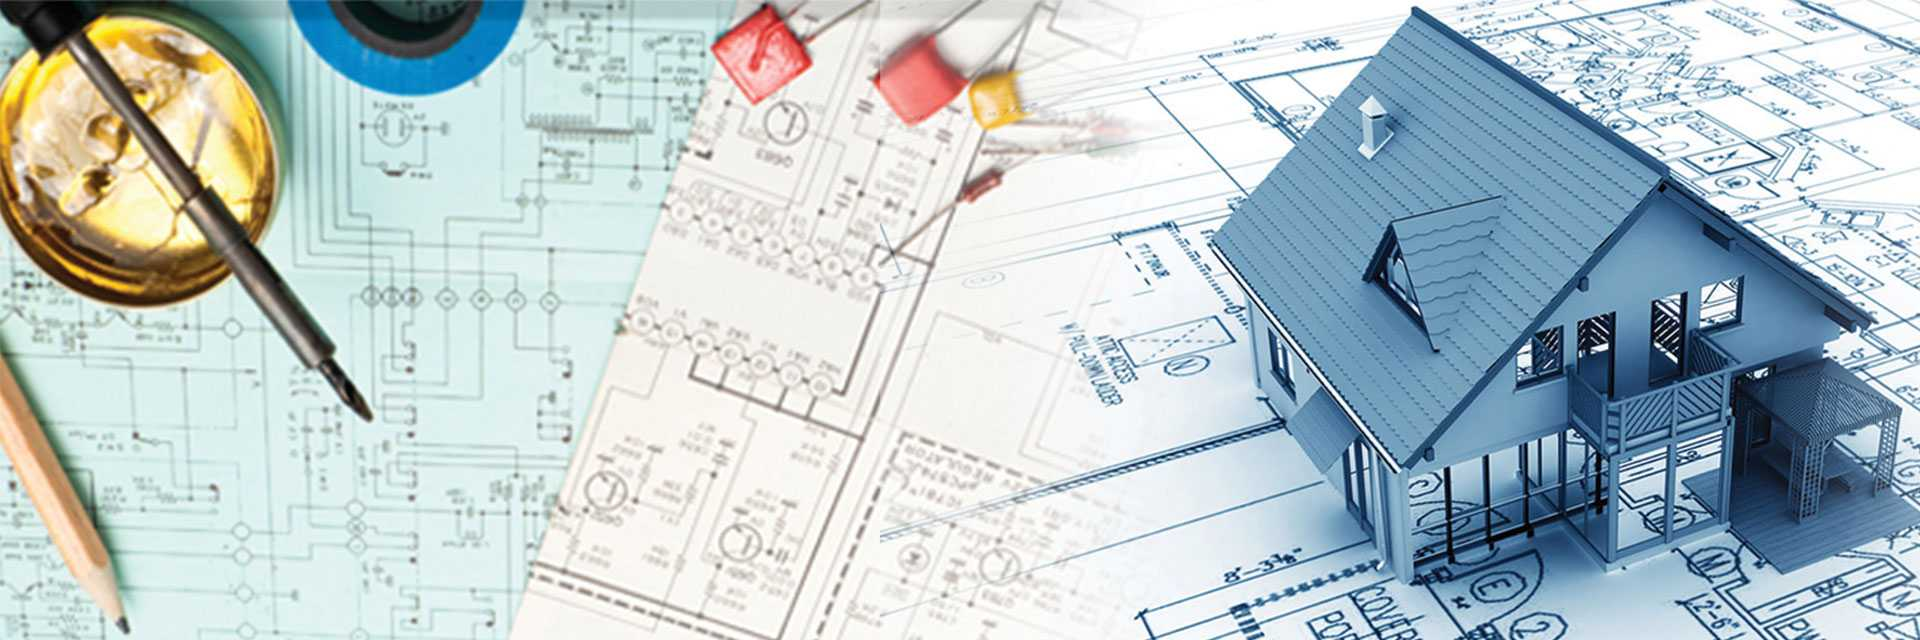 best intellicad cad software